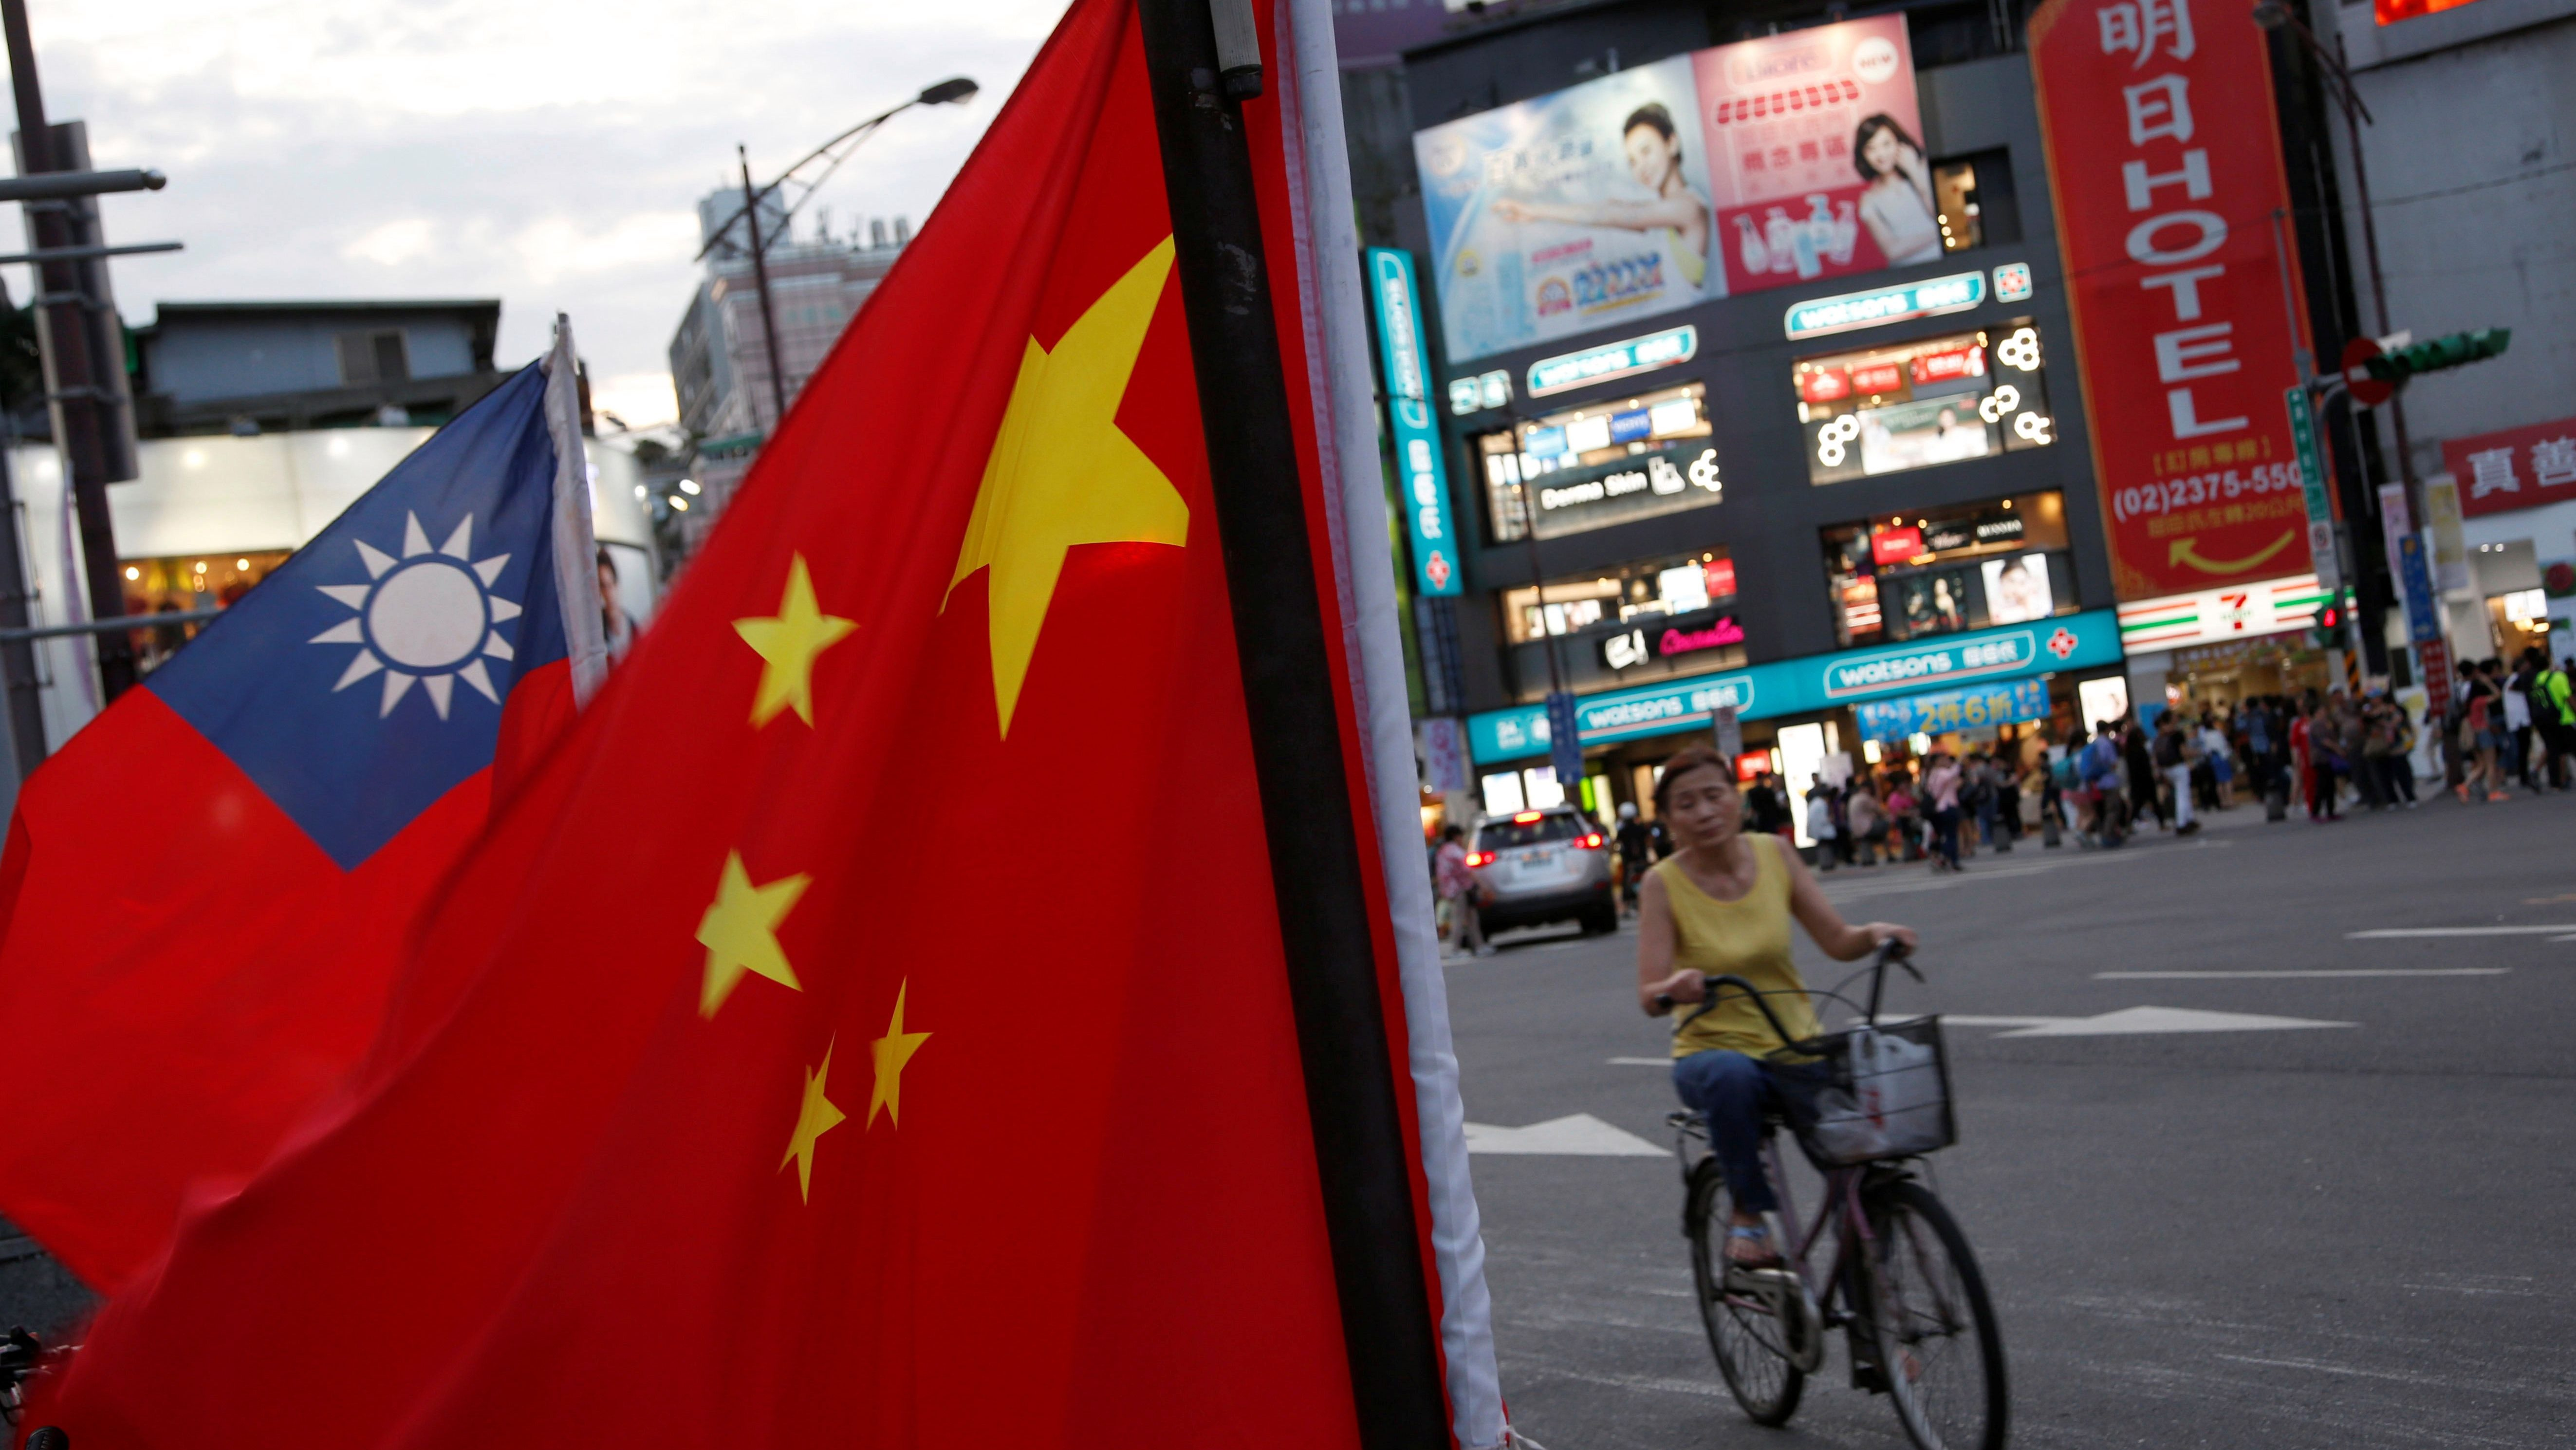 A woman rides a bike past Taiwan and China national flags during a rally held by a group of pro-China supporters calling peaceful reunification, 6 days before  the inauguration ceremony of President-elect Tsai Ing-wen, in Taipei, Taiwan May 14, 2016.